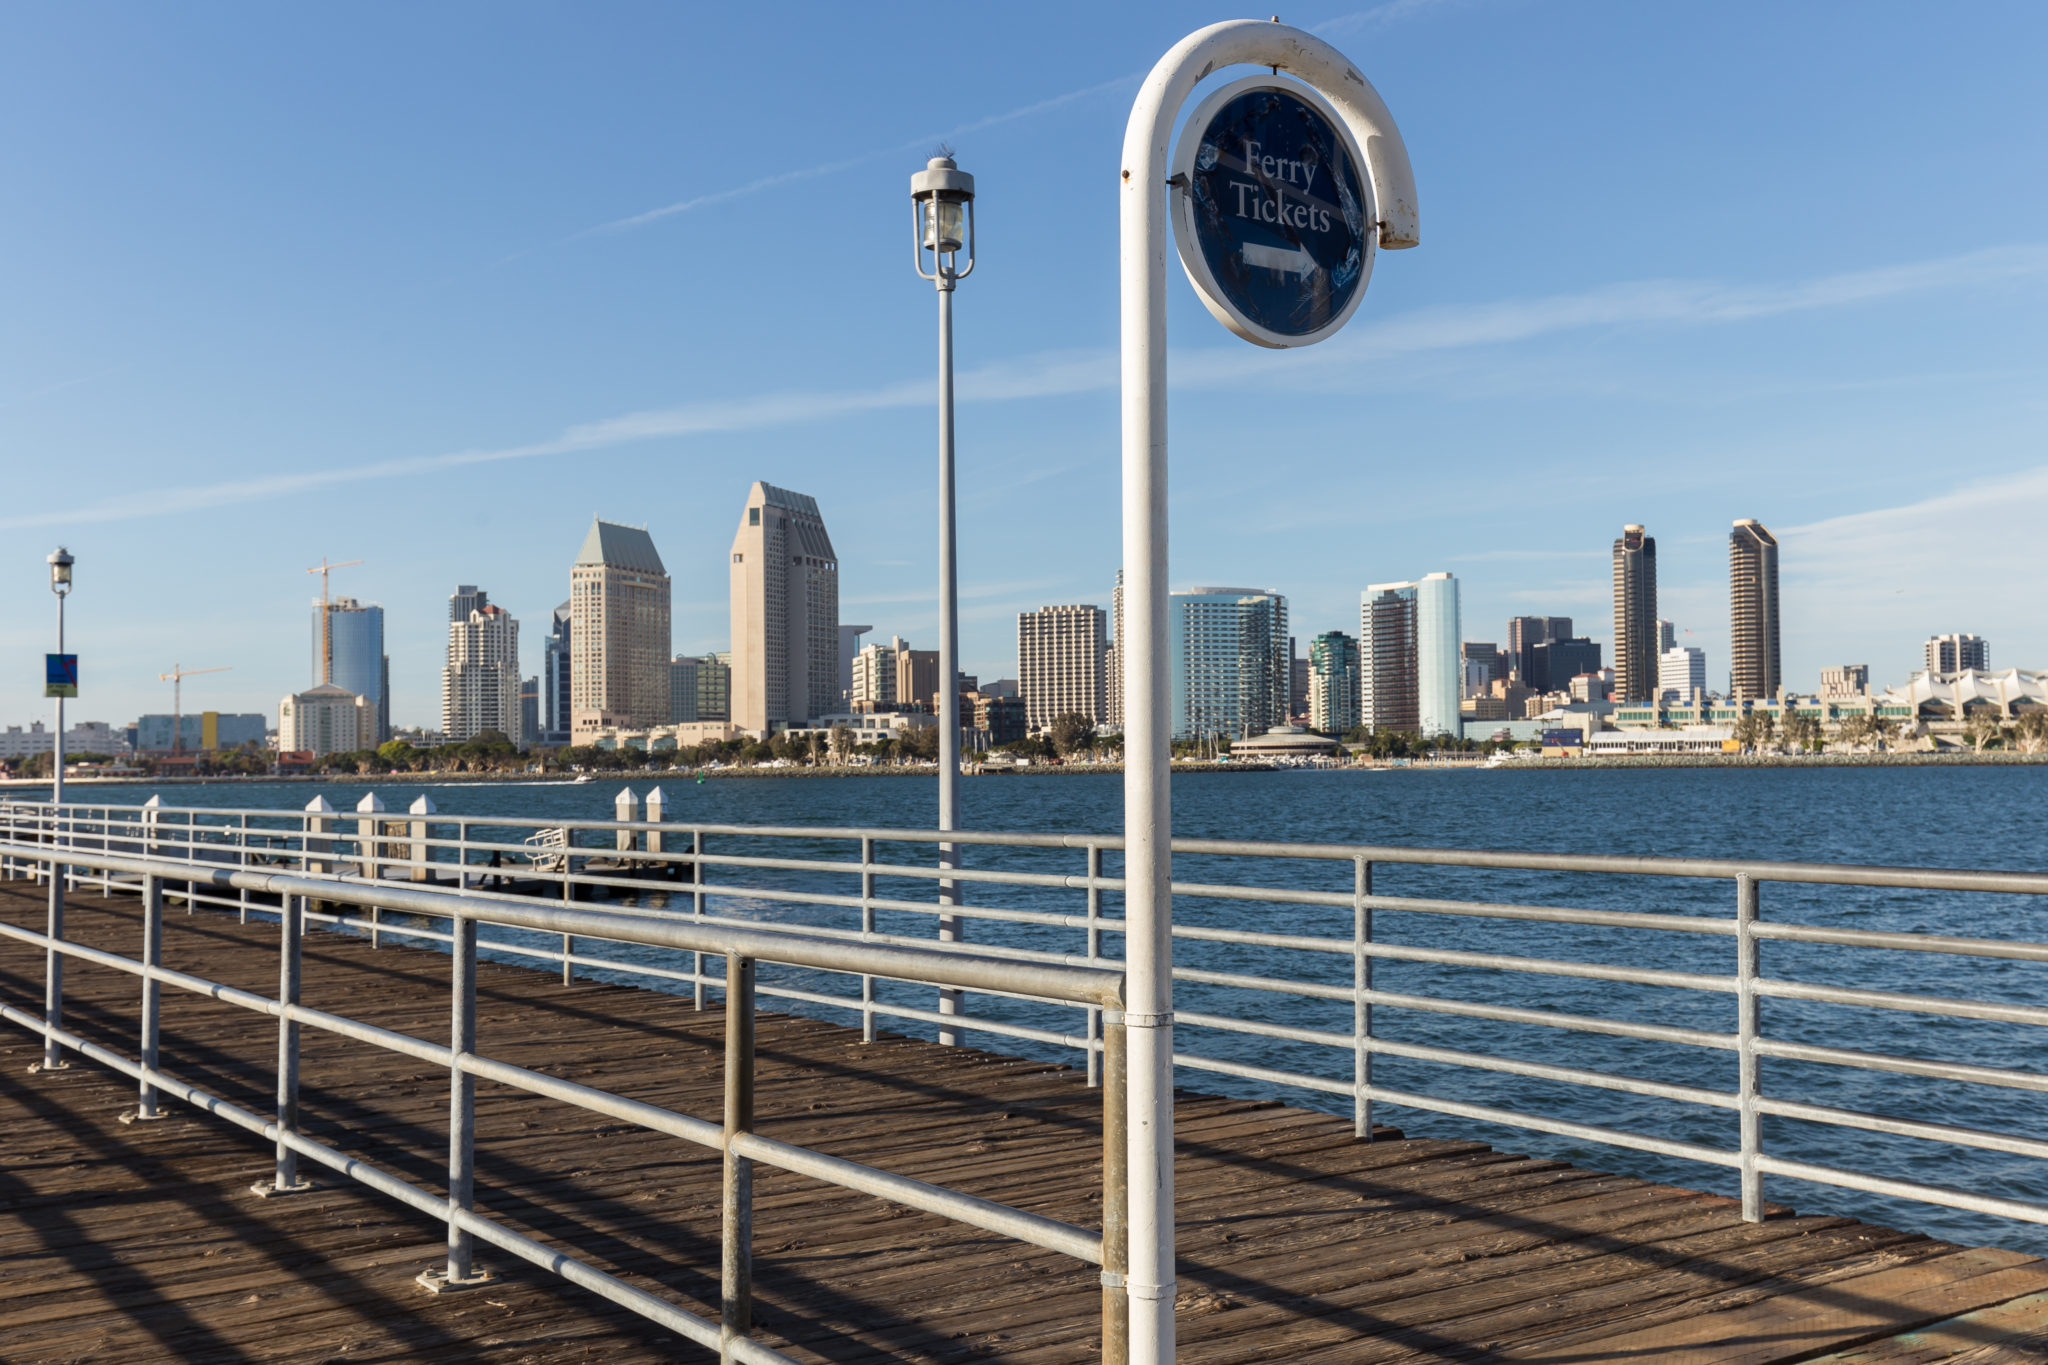 Photo of Coronado downtown in San Diego. Bridge to access the boat to go to Seaport Village